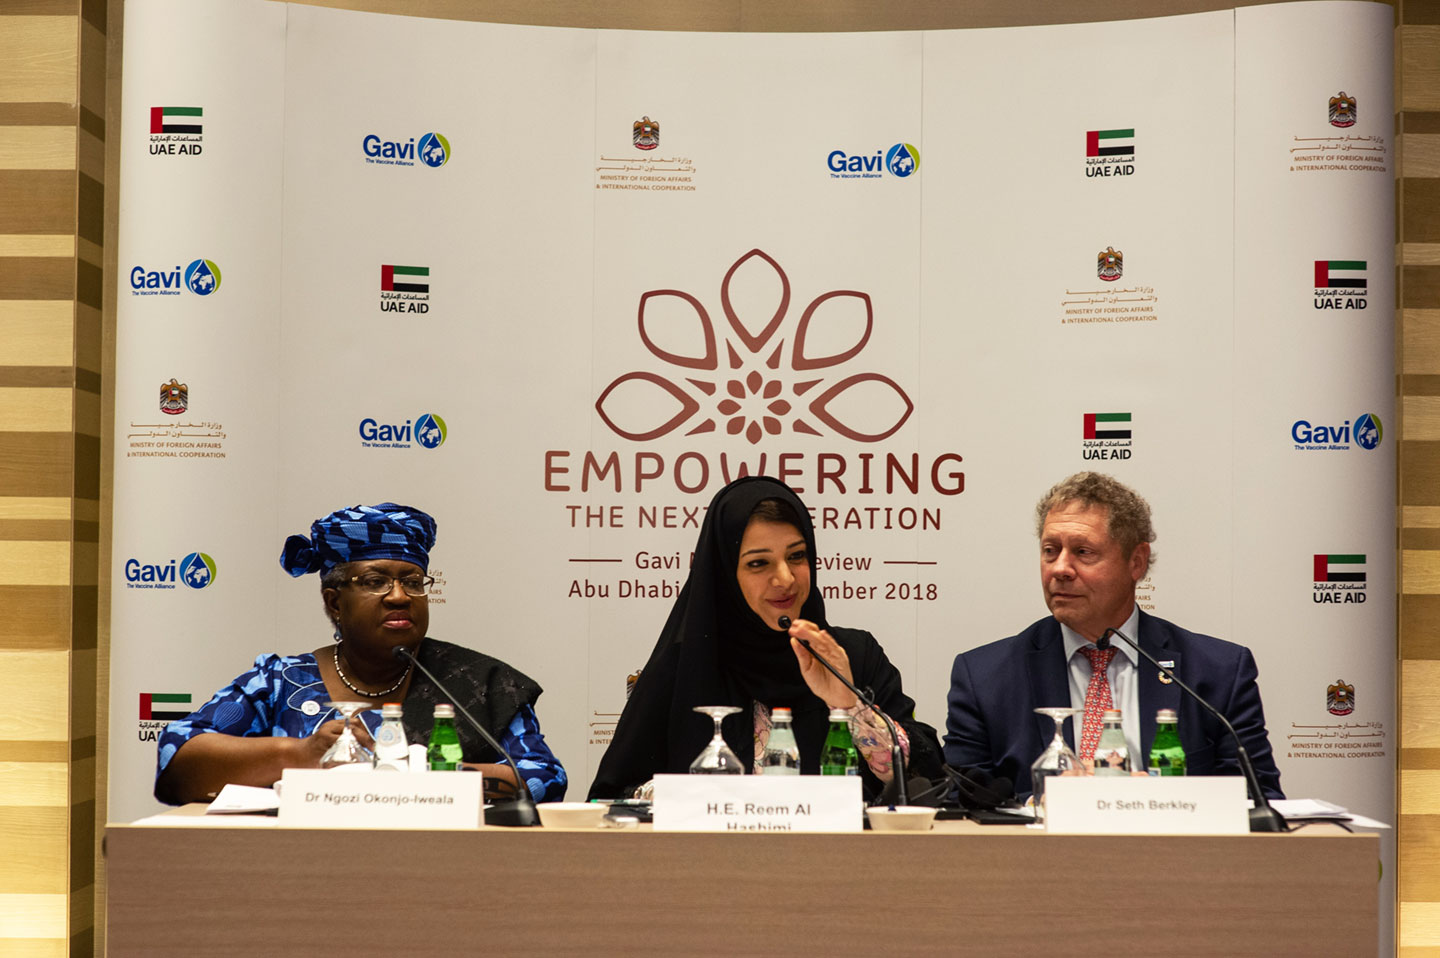 Left to right: Ngozi Okonjo-Iweala, Chair of the Gavi Board, Switzerland, Reem Al Hashimy, Minister of State for International Cooperation, United Arab Emirates, Seth Berkley, CEO, Gavi, the Vaccine Alliance, Switzerland- credits:Gavi/2018/Oscar Seykens